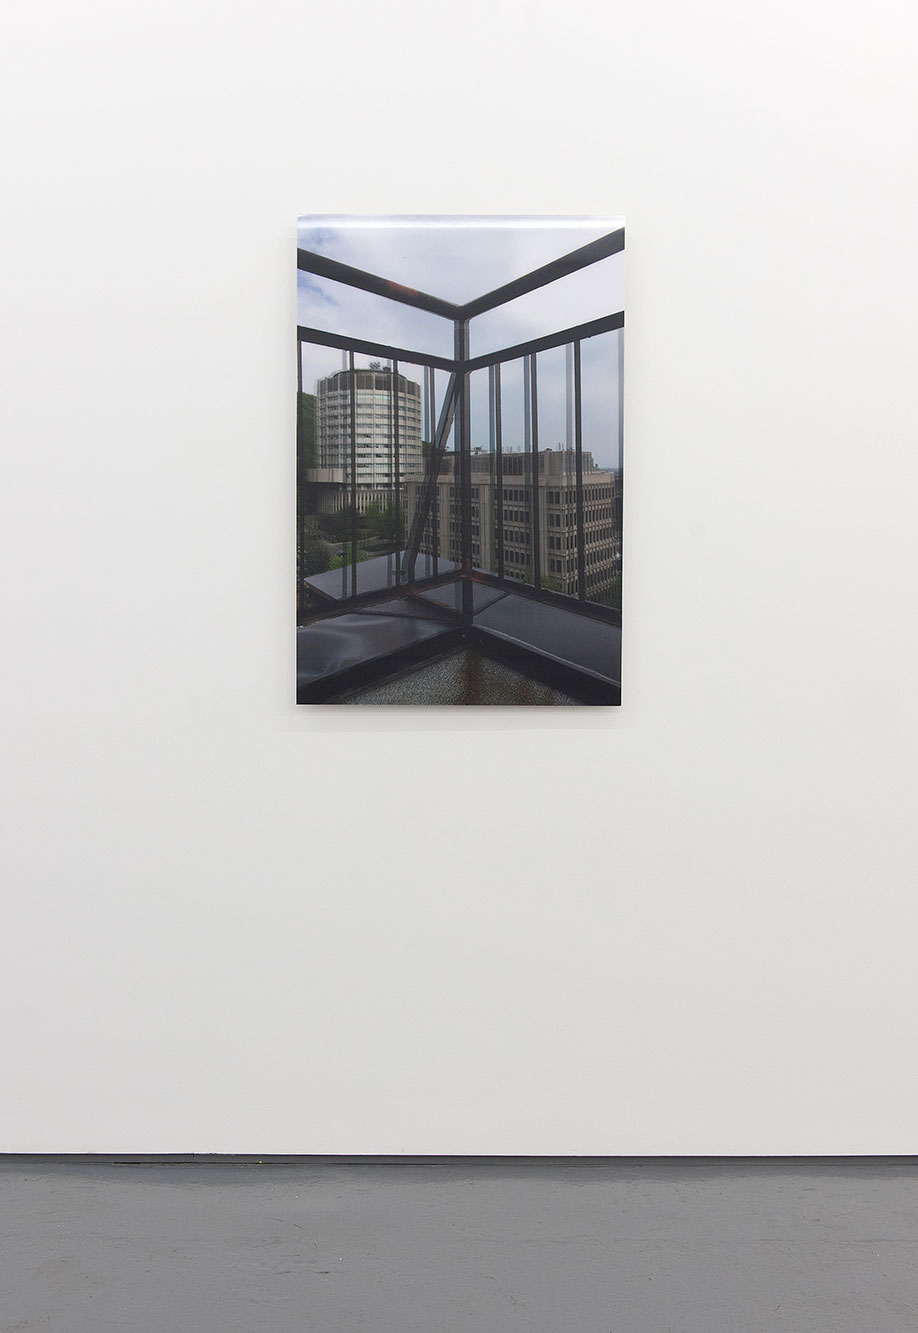 <b>Title: </b>Displaced rectangles in a hybrid, residual vertical (or standing at the edge and seeing double)<br /><b>Year: </b>2016<br /><b>Medium: </b>Lenticular print on aluminium<br /><b>Size: </b>91 x 61 cm